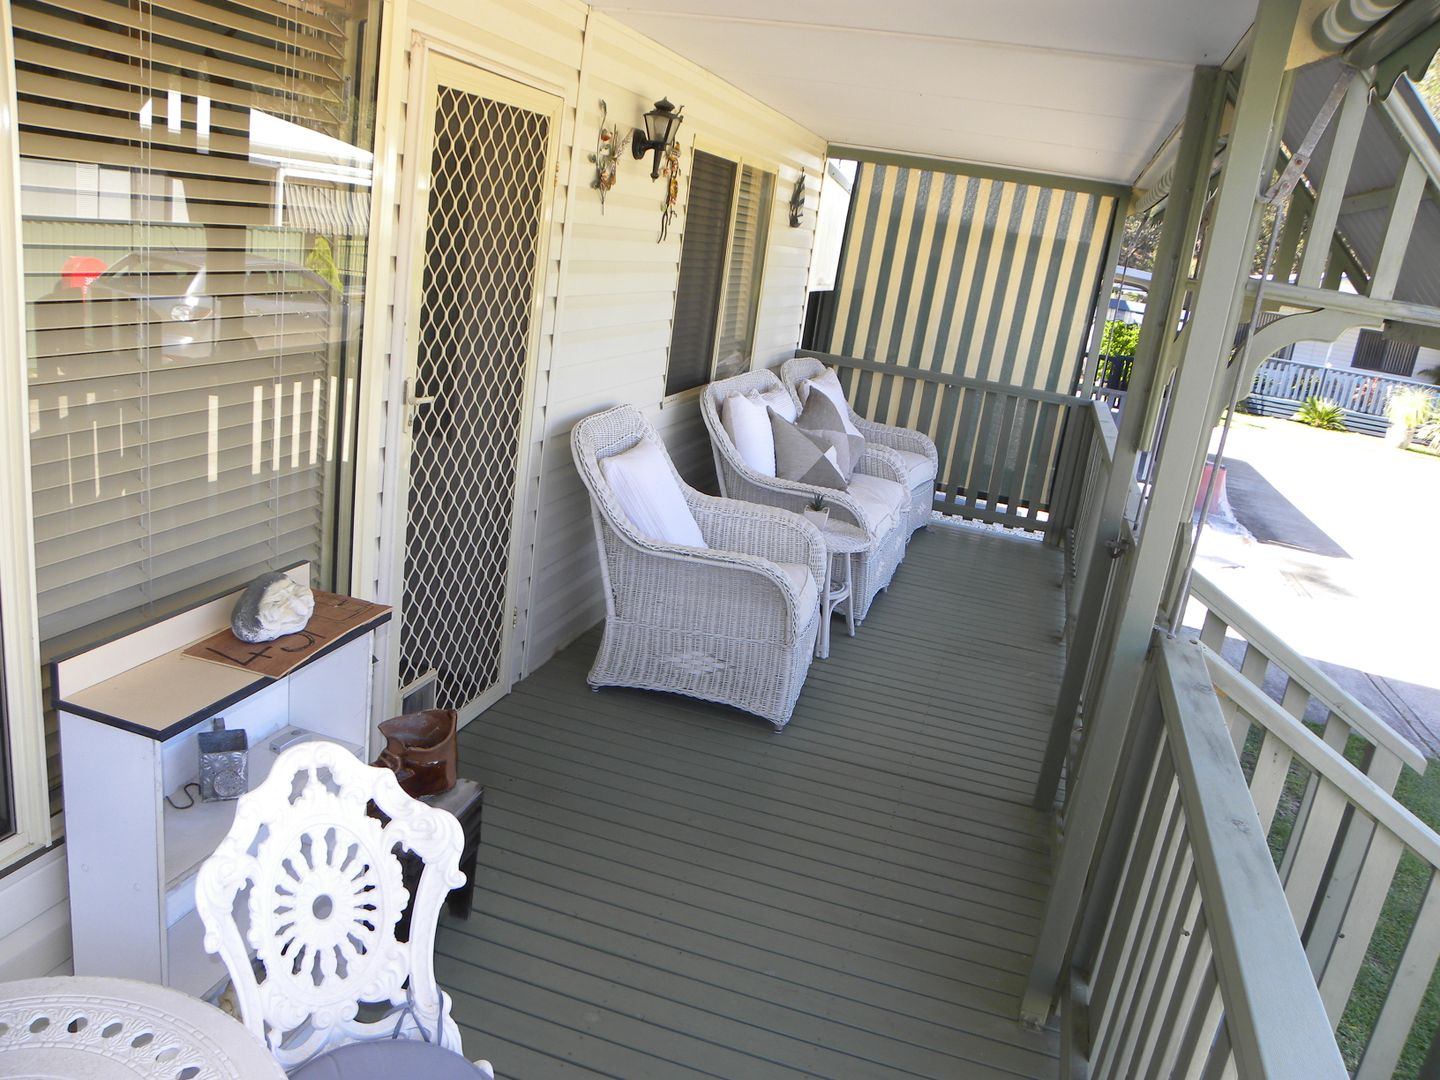 62/187 The Springs Rd, Sussex Inlet NSW 2540, Image 1